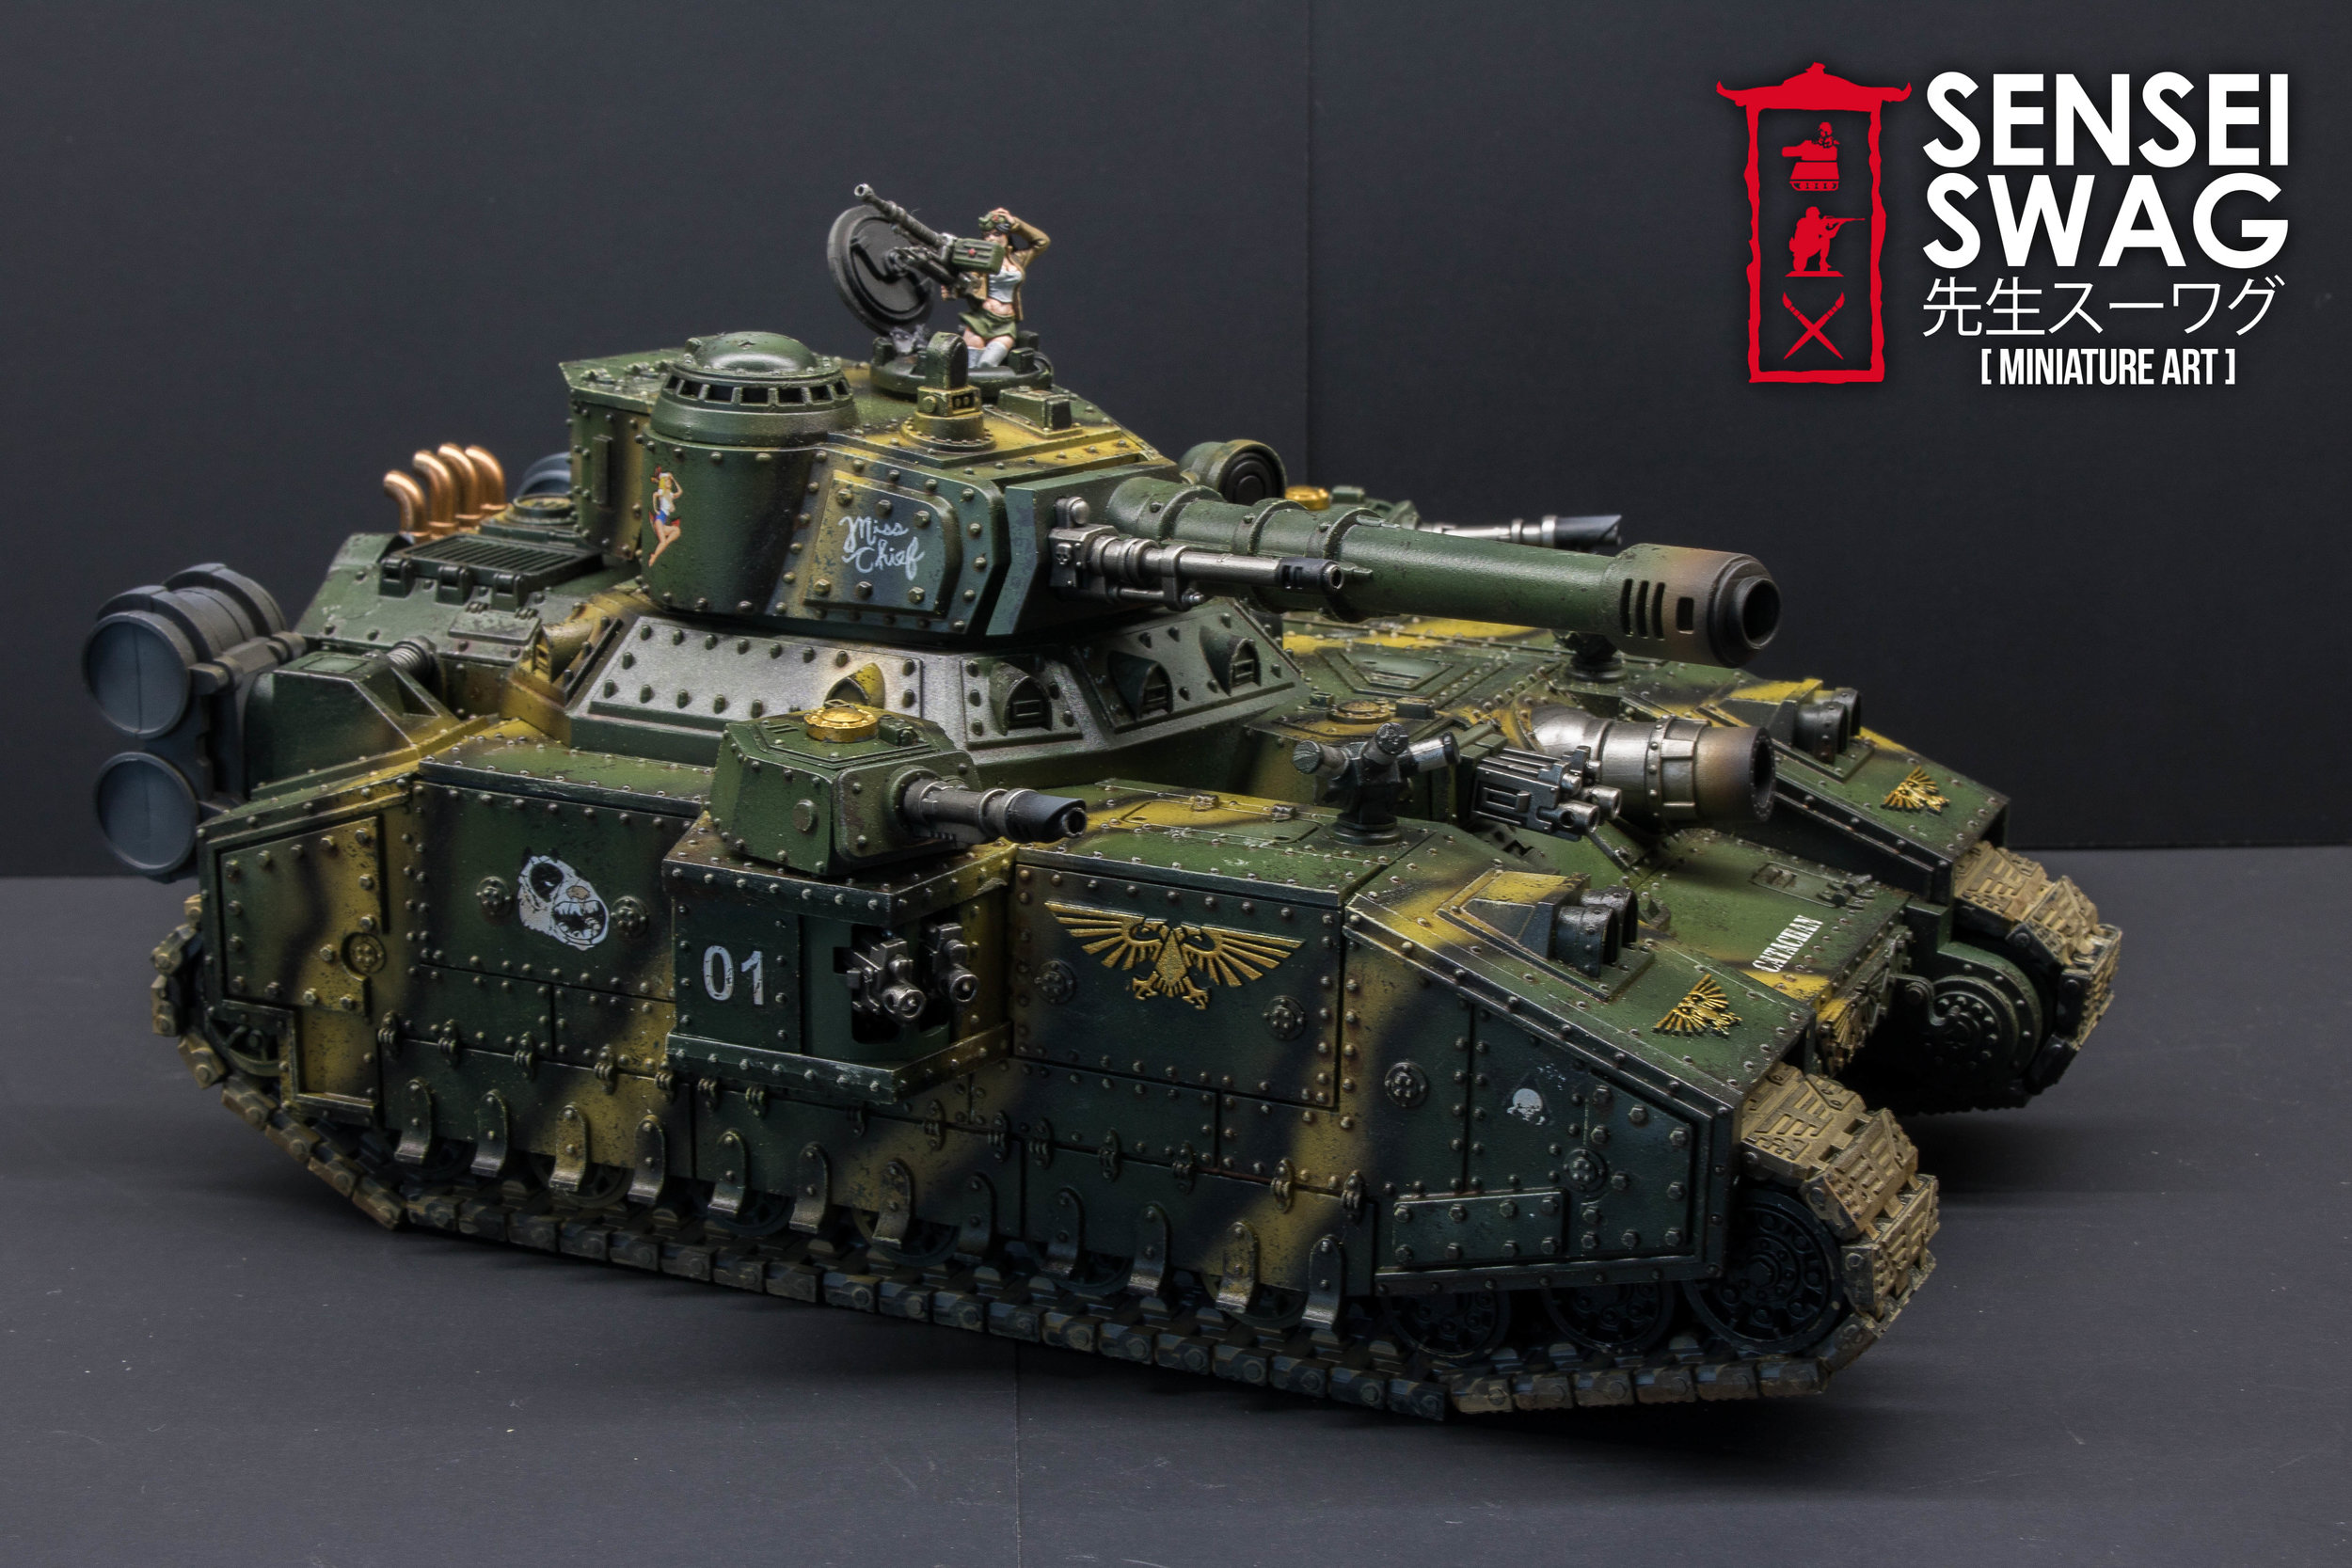 Catachan Jungle Fights Armored Baneblade Leman Russ Jungle Camo Imperial Guard-2.jpg